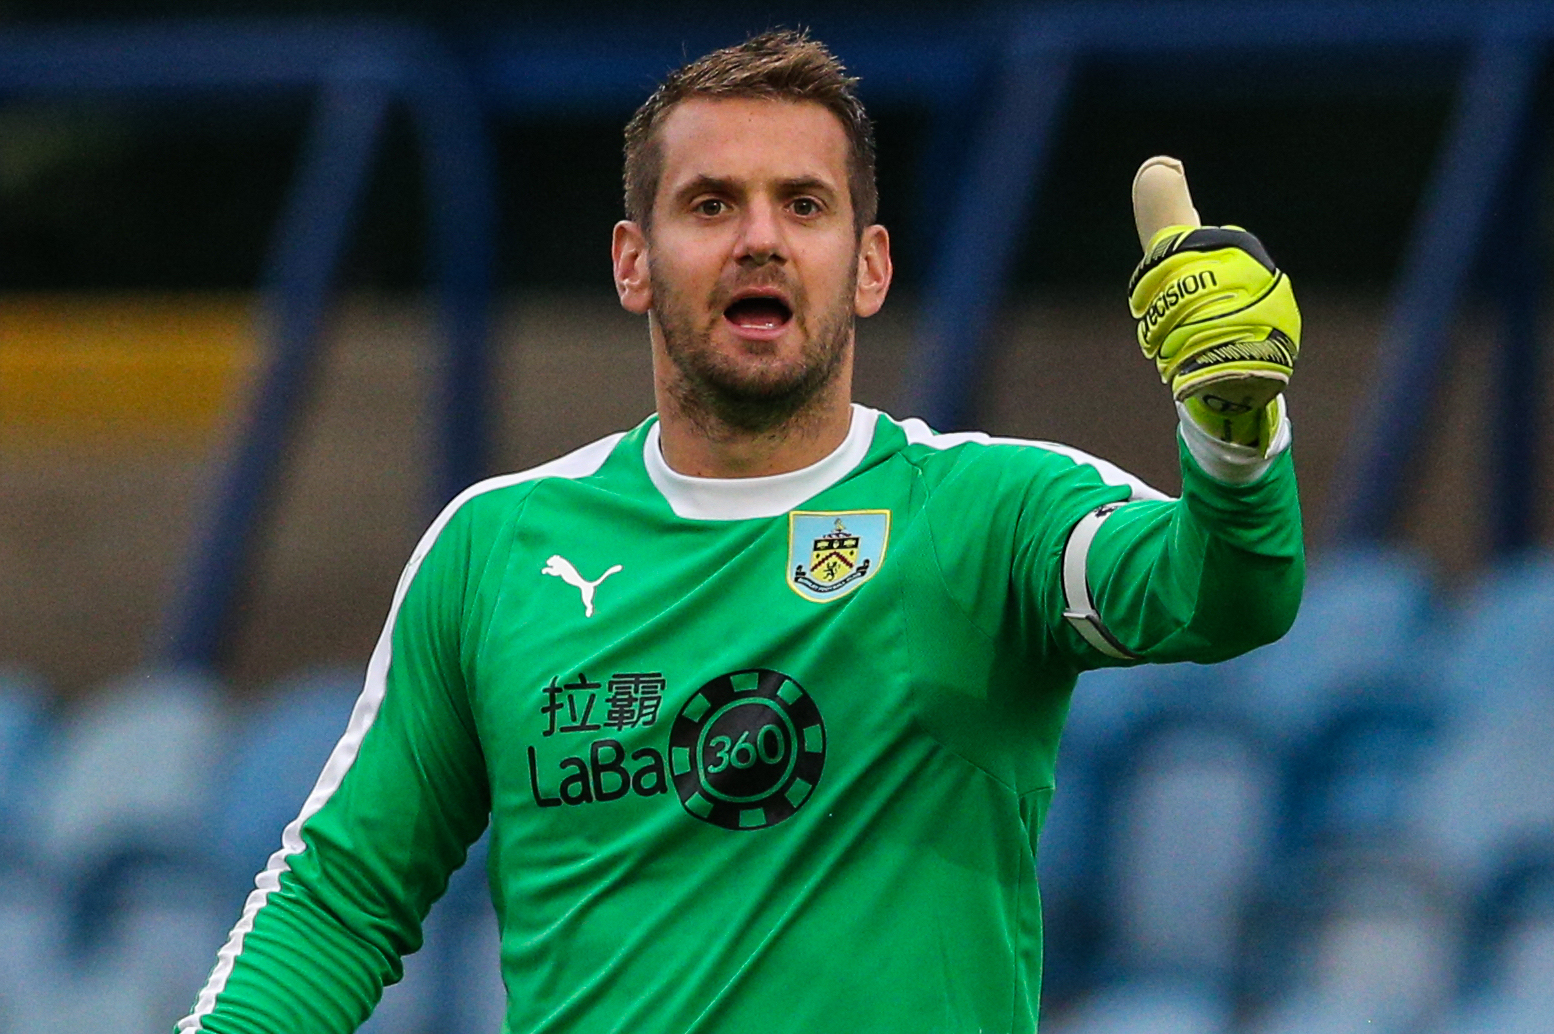 Tom Heaton on potential England recall